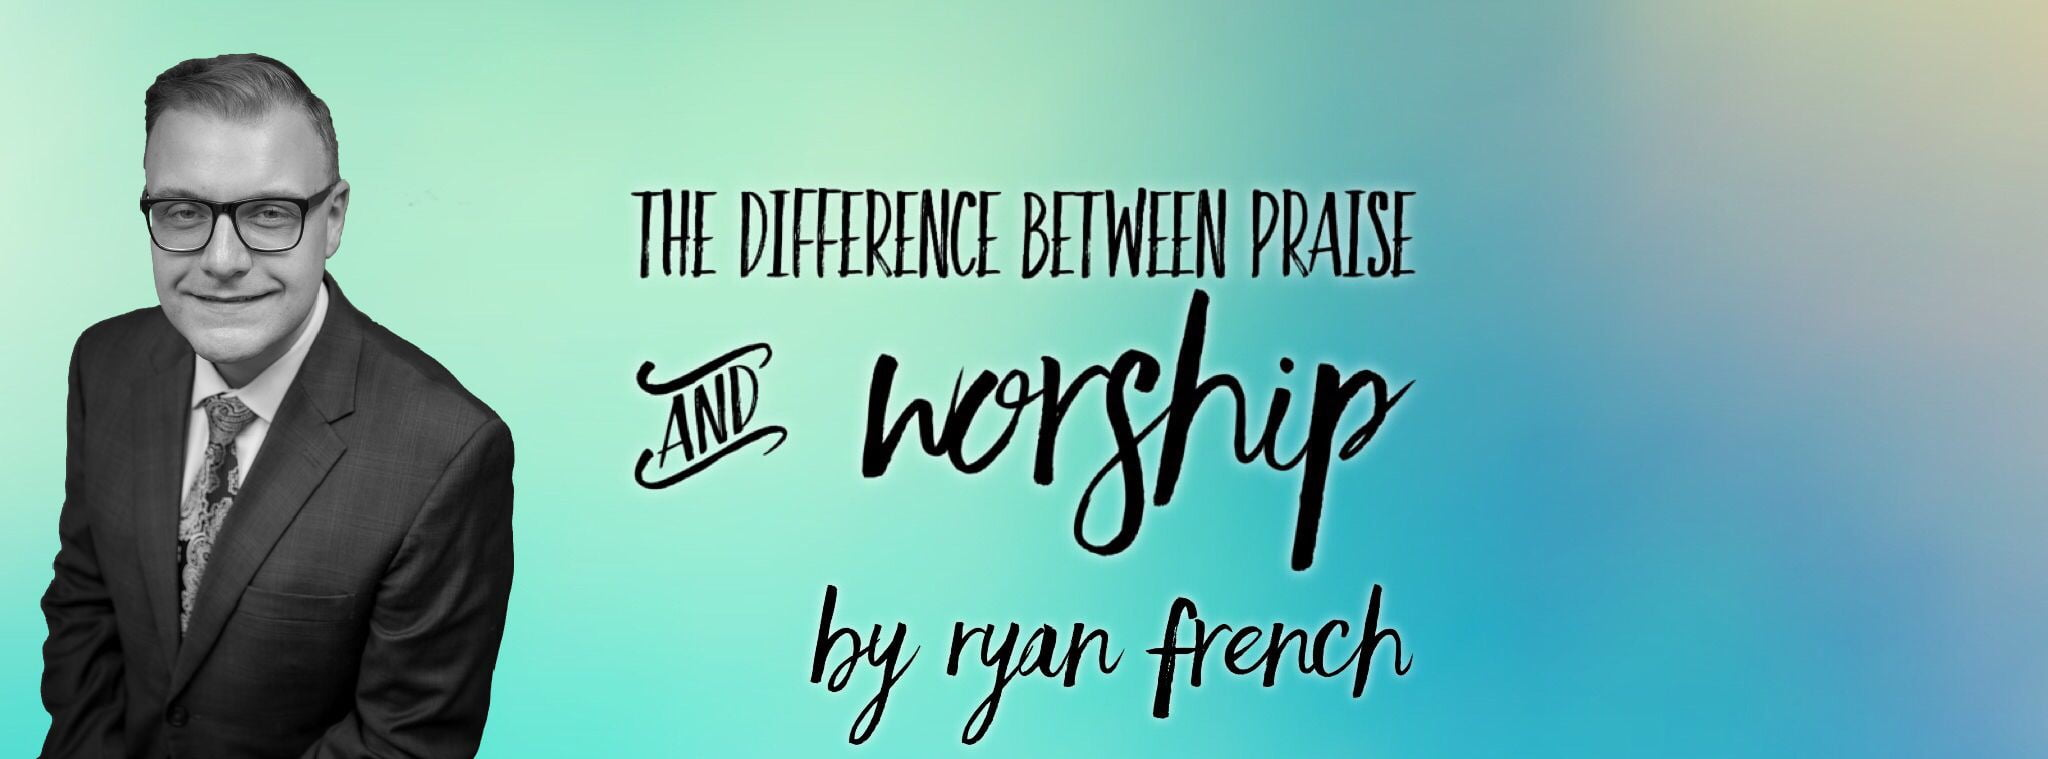 The Difference Between Praise & Worship – Apostolic Voice